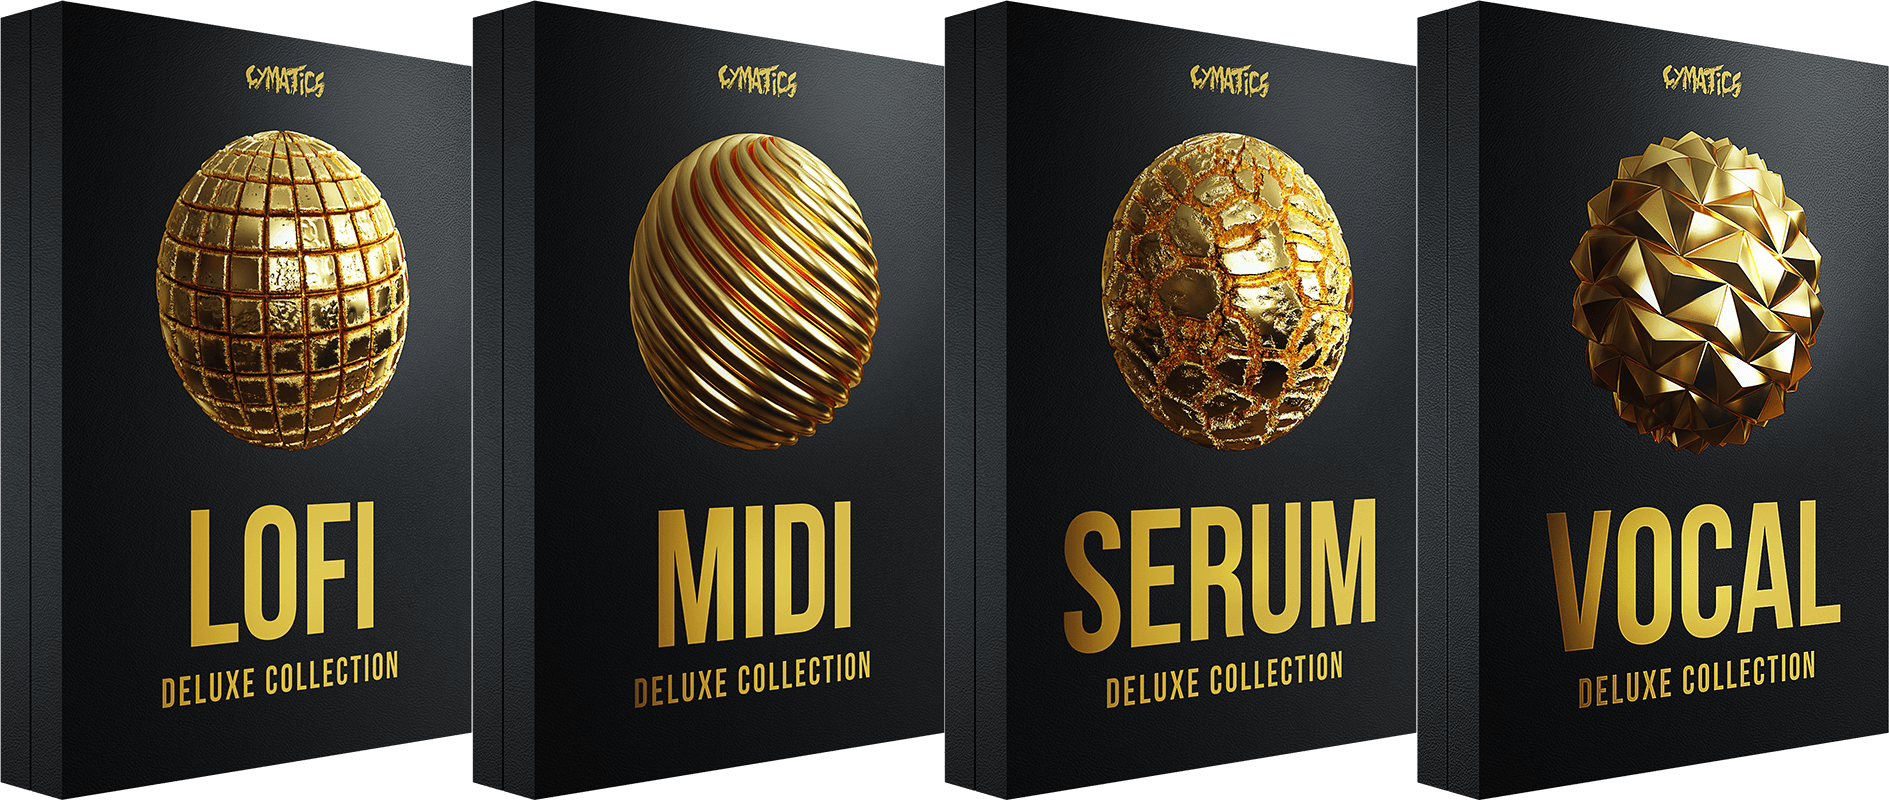 Cymatics fm - The #1 Site For Serum Presets, Samplepacks & More!